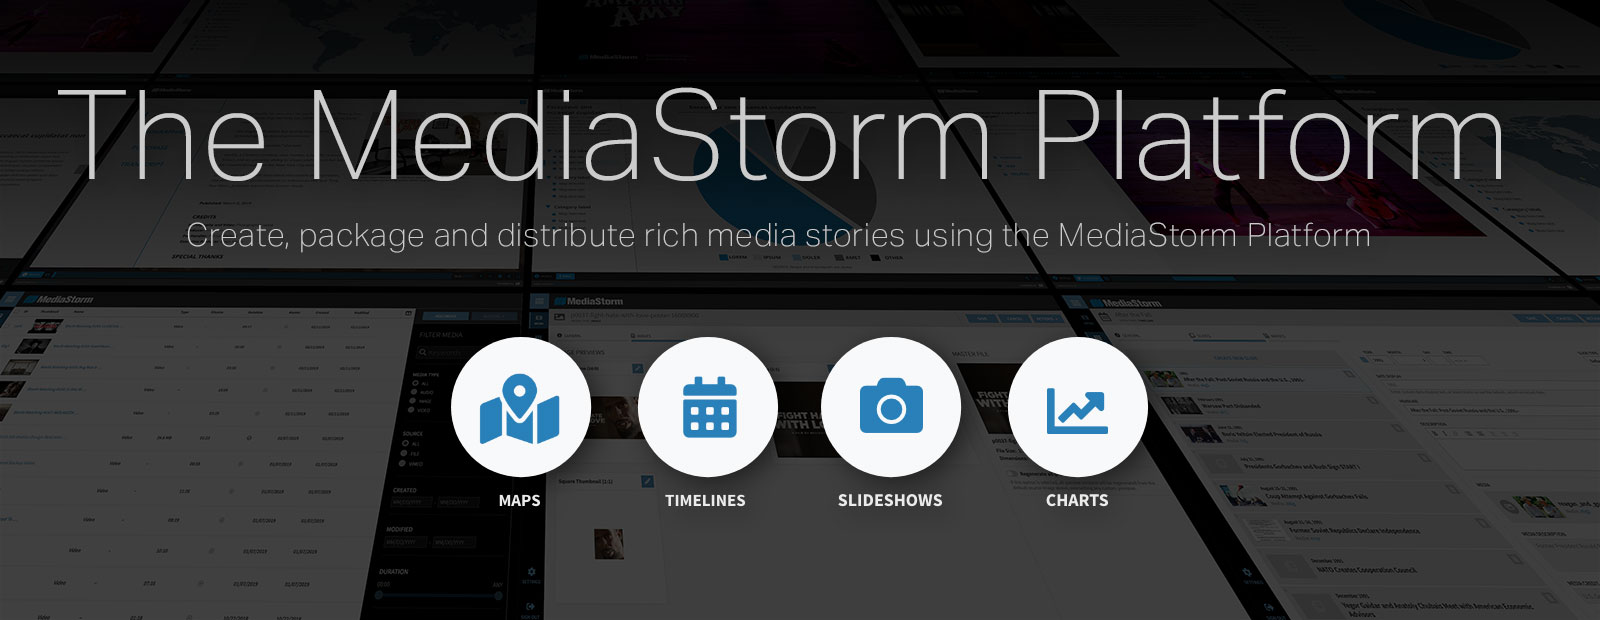 Learn More about the MediaStorm Platform